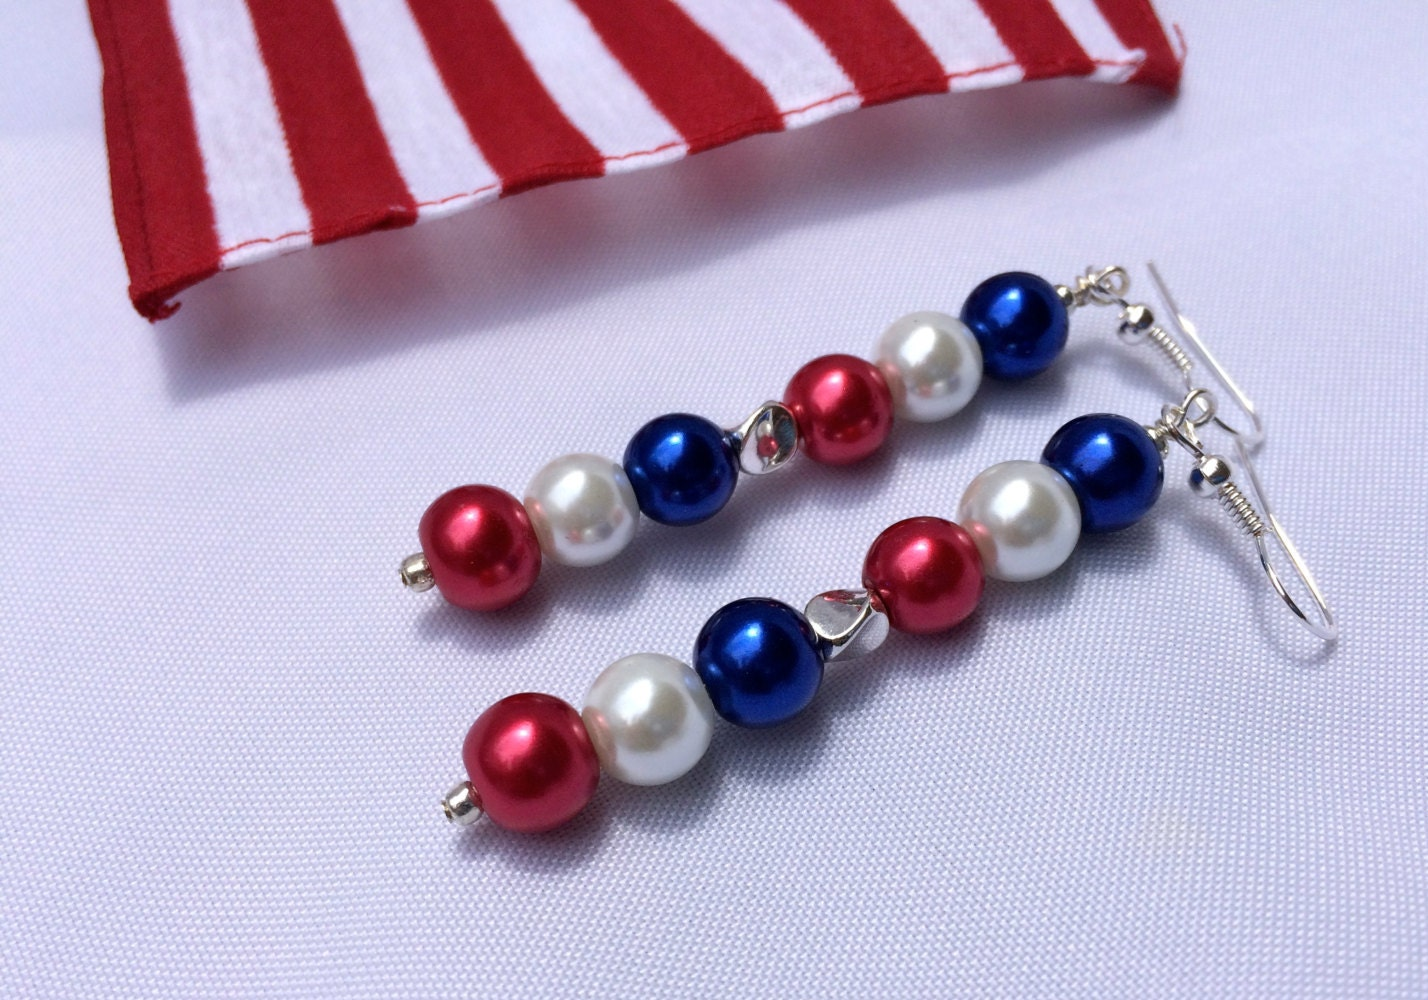 4th of july earrings 4th of july jewelry earrings white and blue by 3017